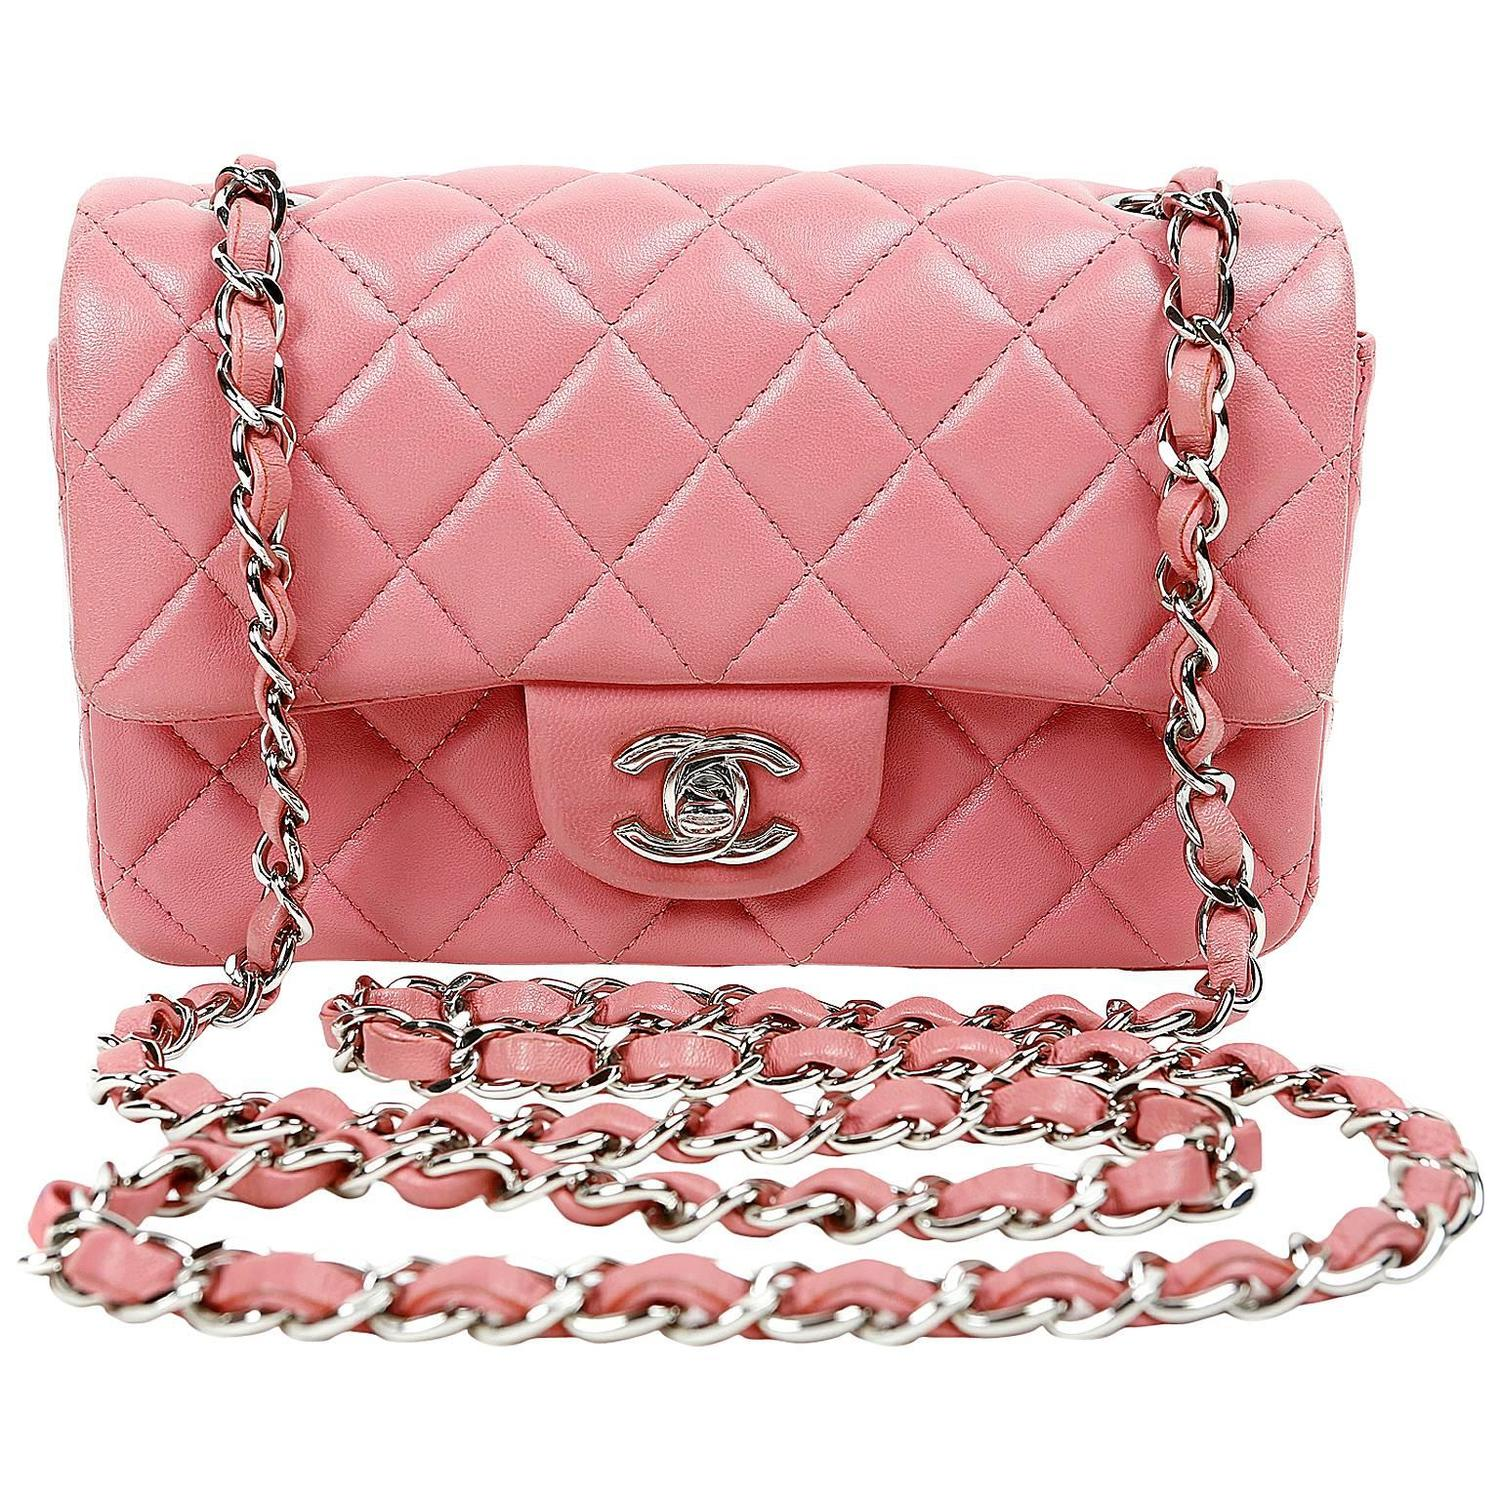 Chanel Raspberry Pink Lambskin Small Classic Flap Bag with Silver ... : pink quilted bag - Adamdwight.com